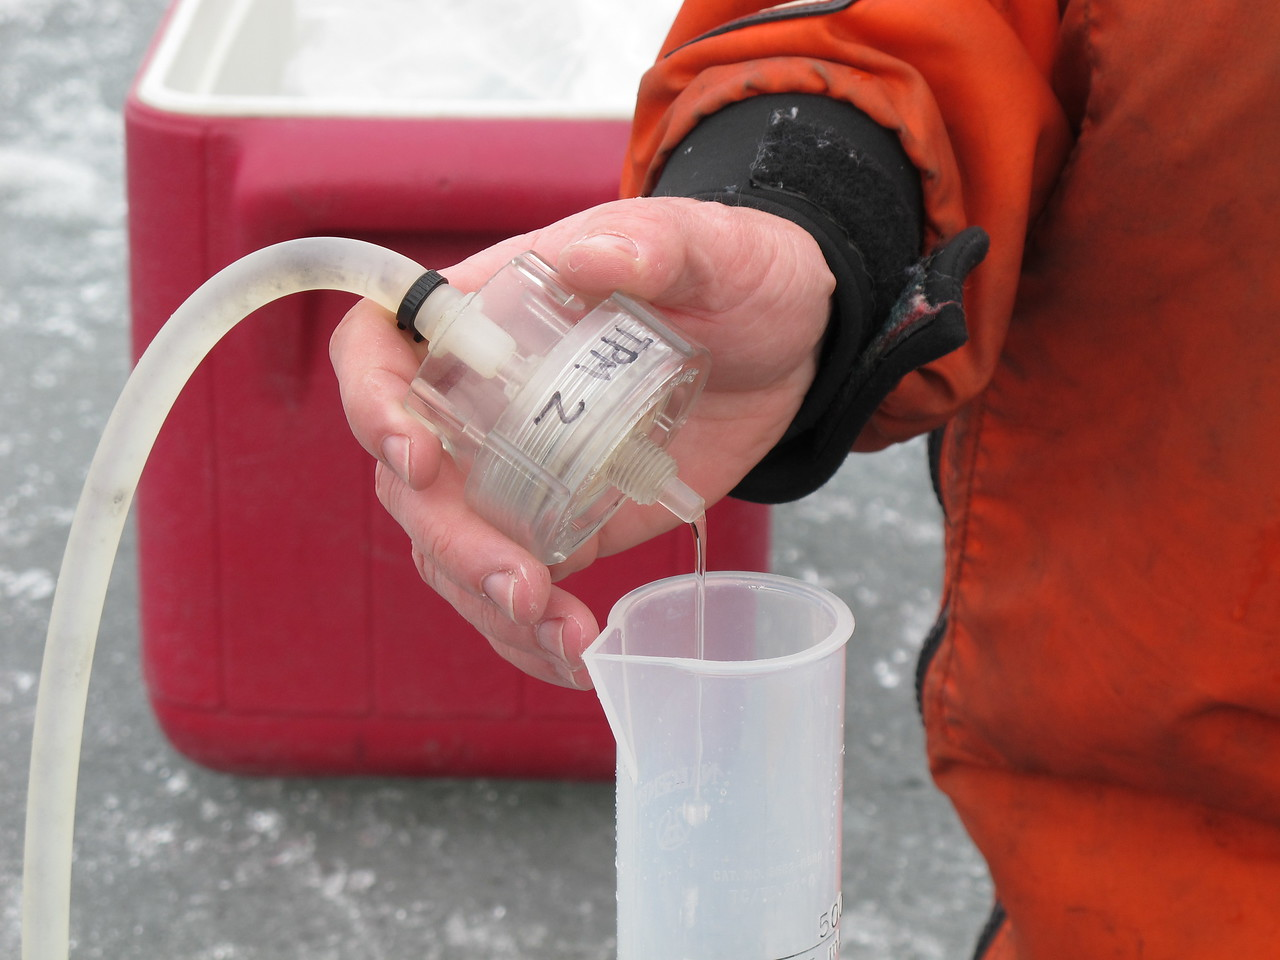 Again the sample is an outlier in the usual trend. Water runs through the filter until the filter clogs with particulate matter. That usually takes 5 to 8 milliliters of water during ice cover, Bier says. On this day it took 2.